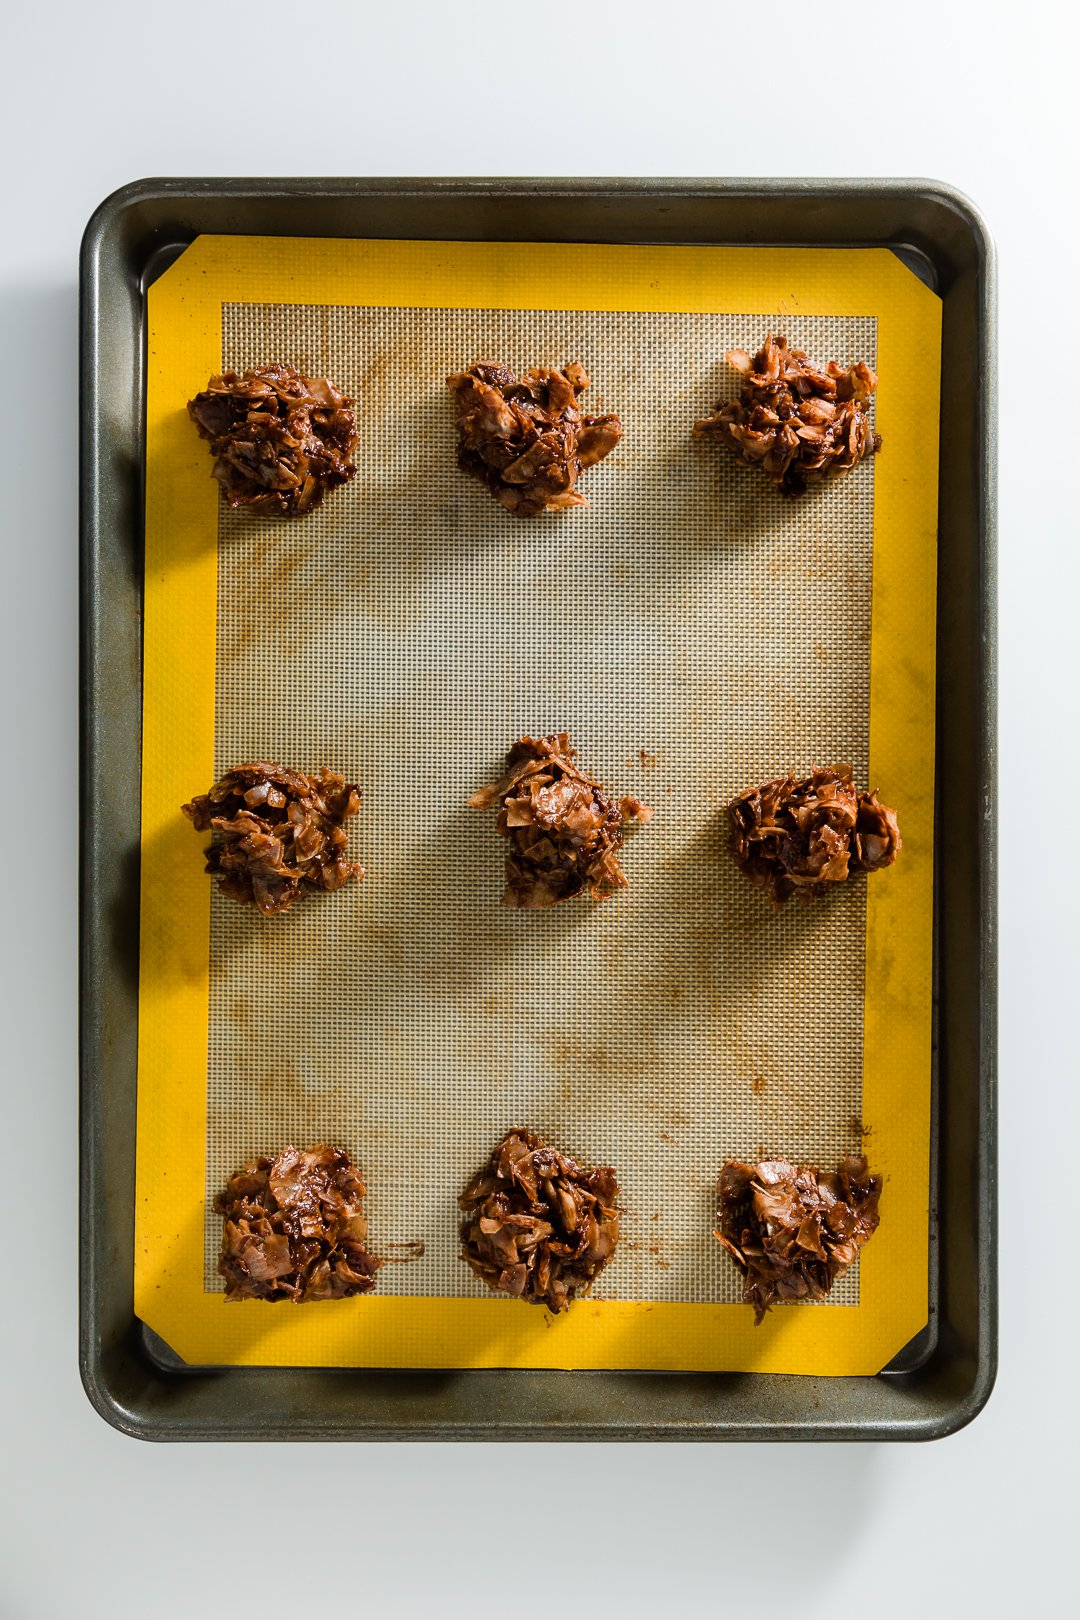 a tray of chocolate macaroons ready to go into the oven